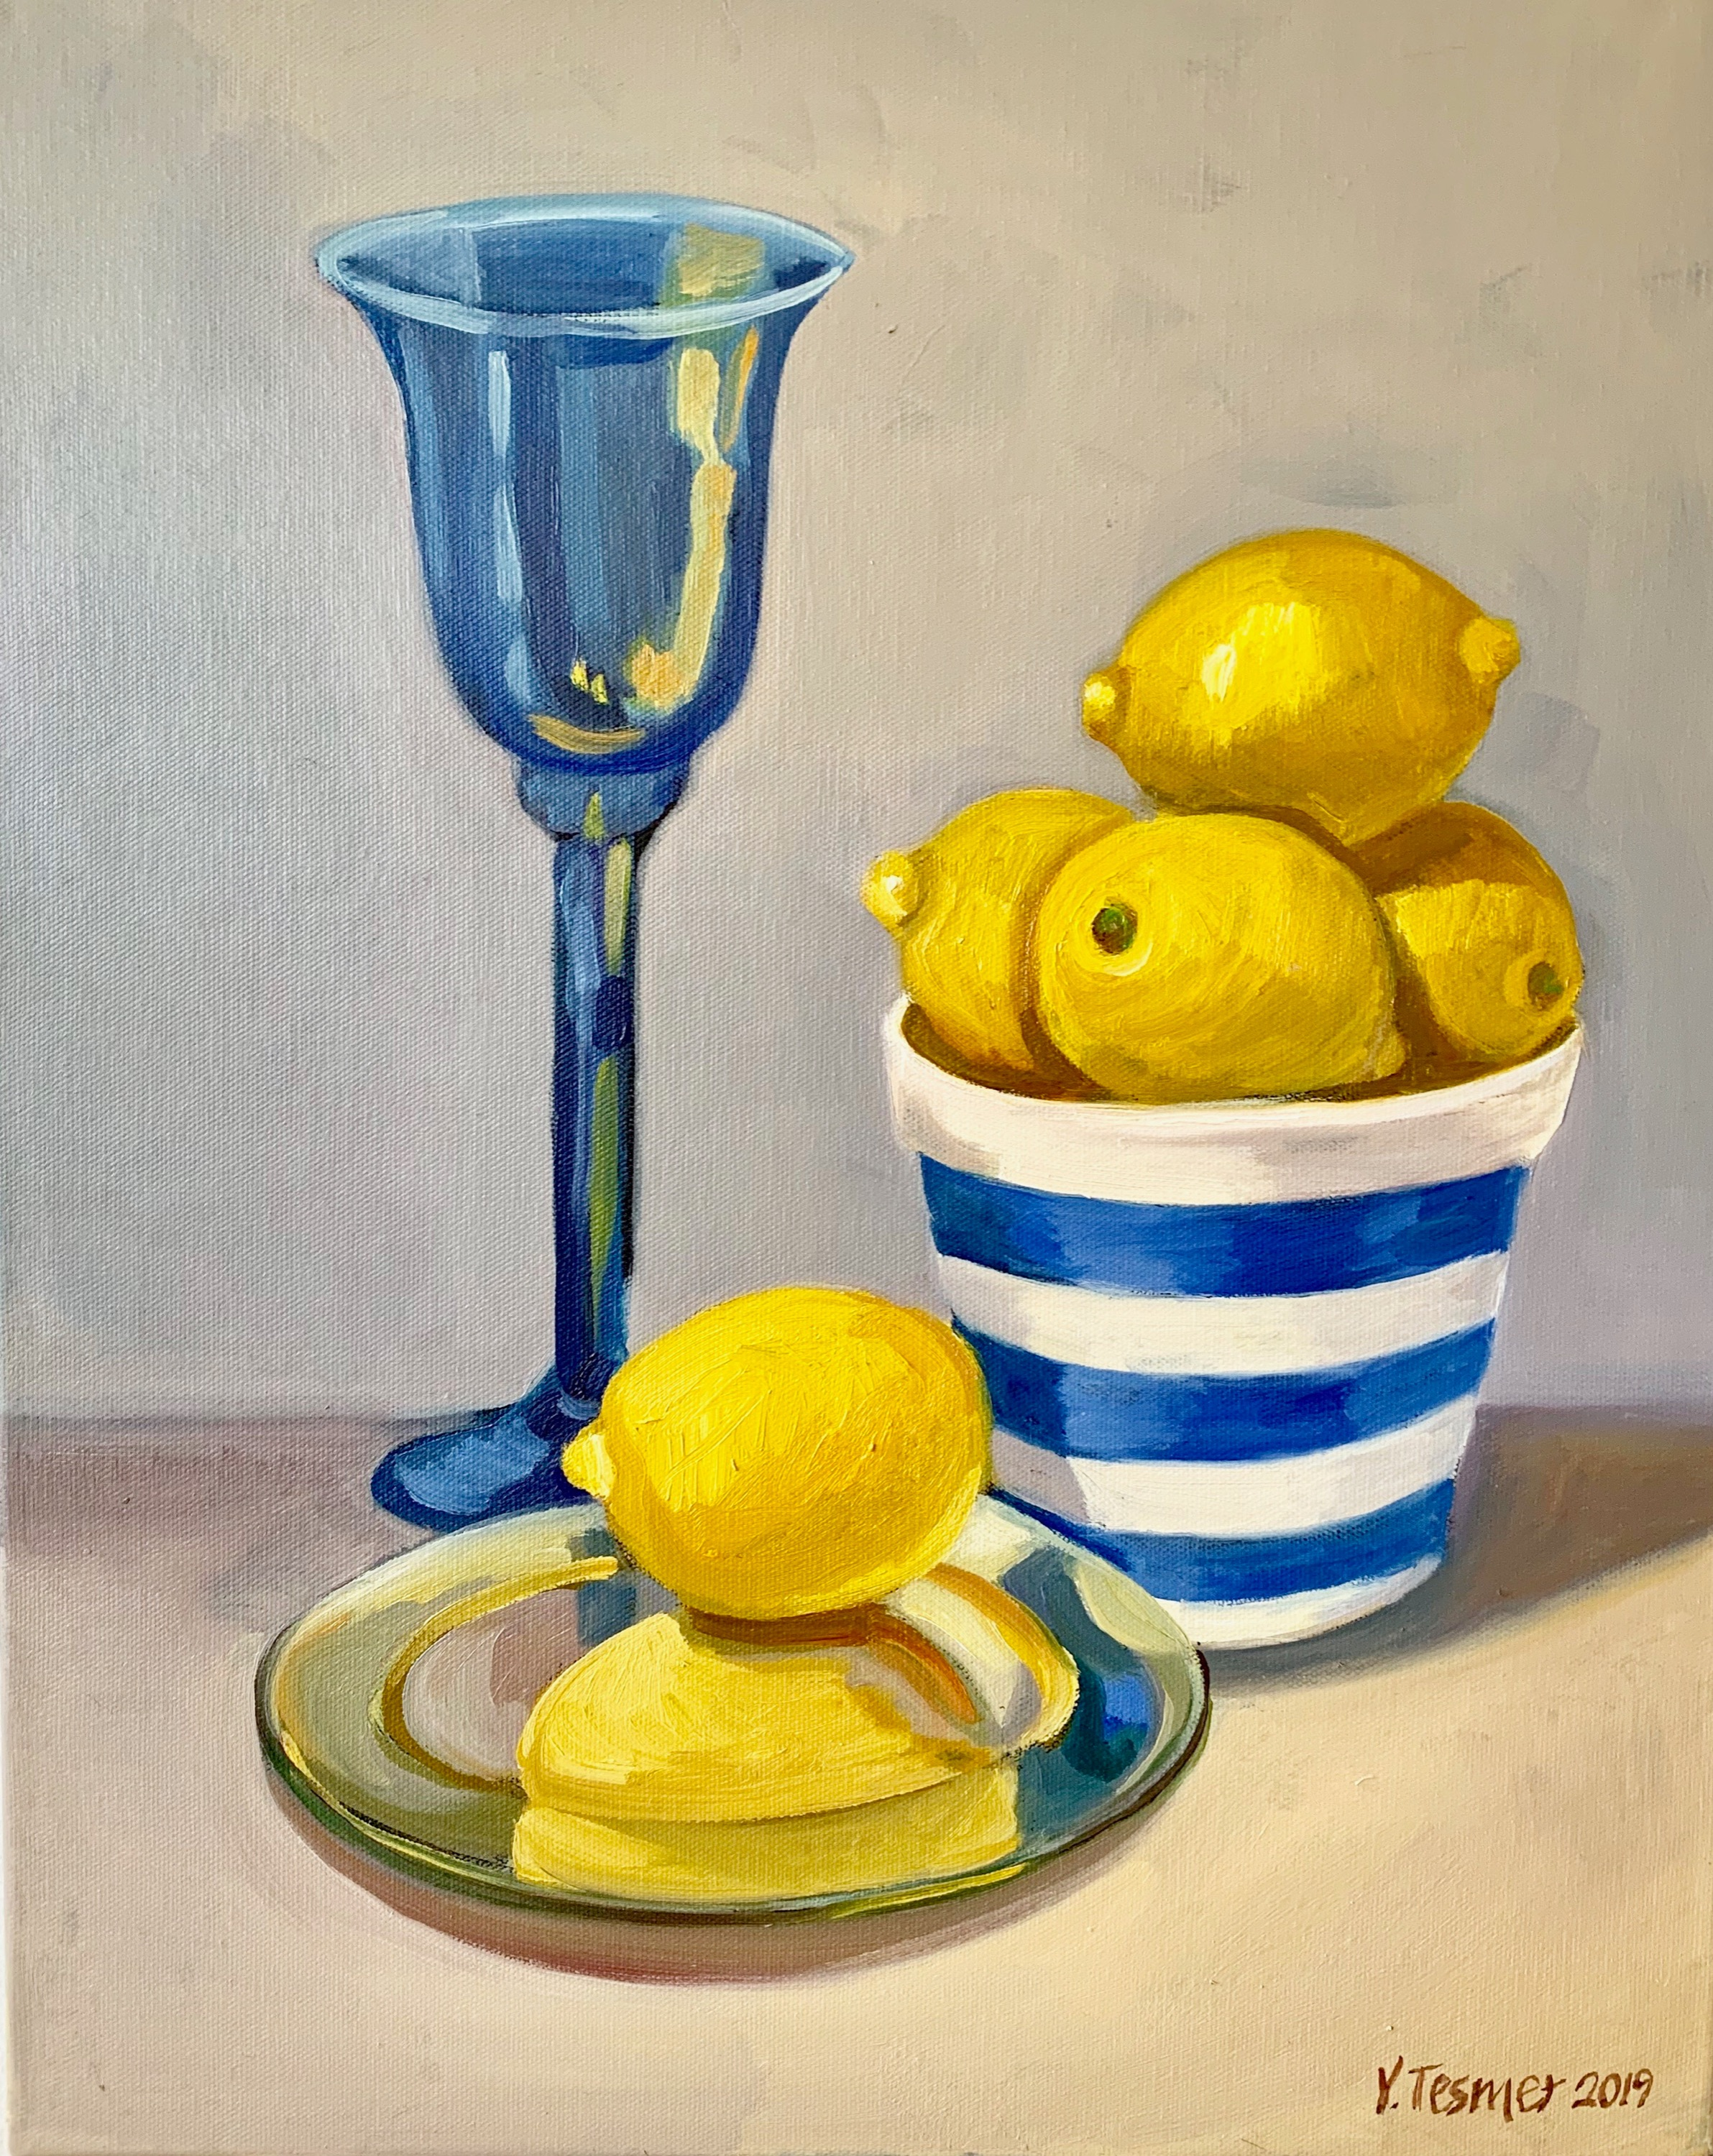 Blue Goblet with Lemons